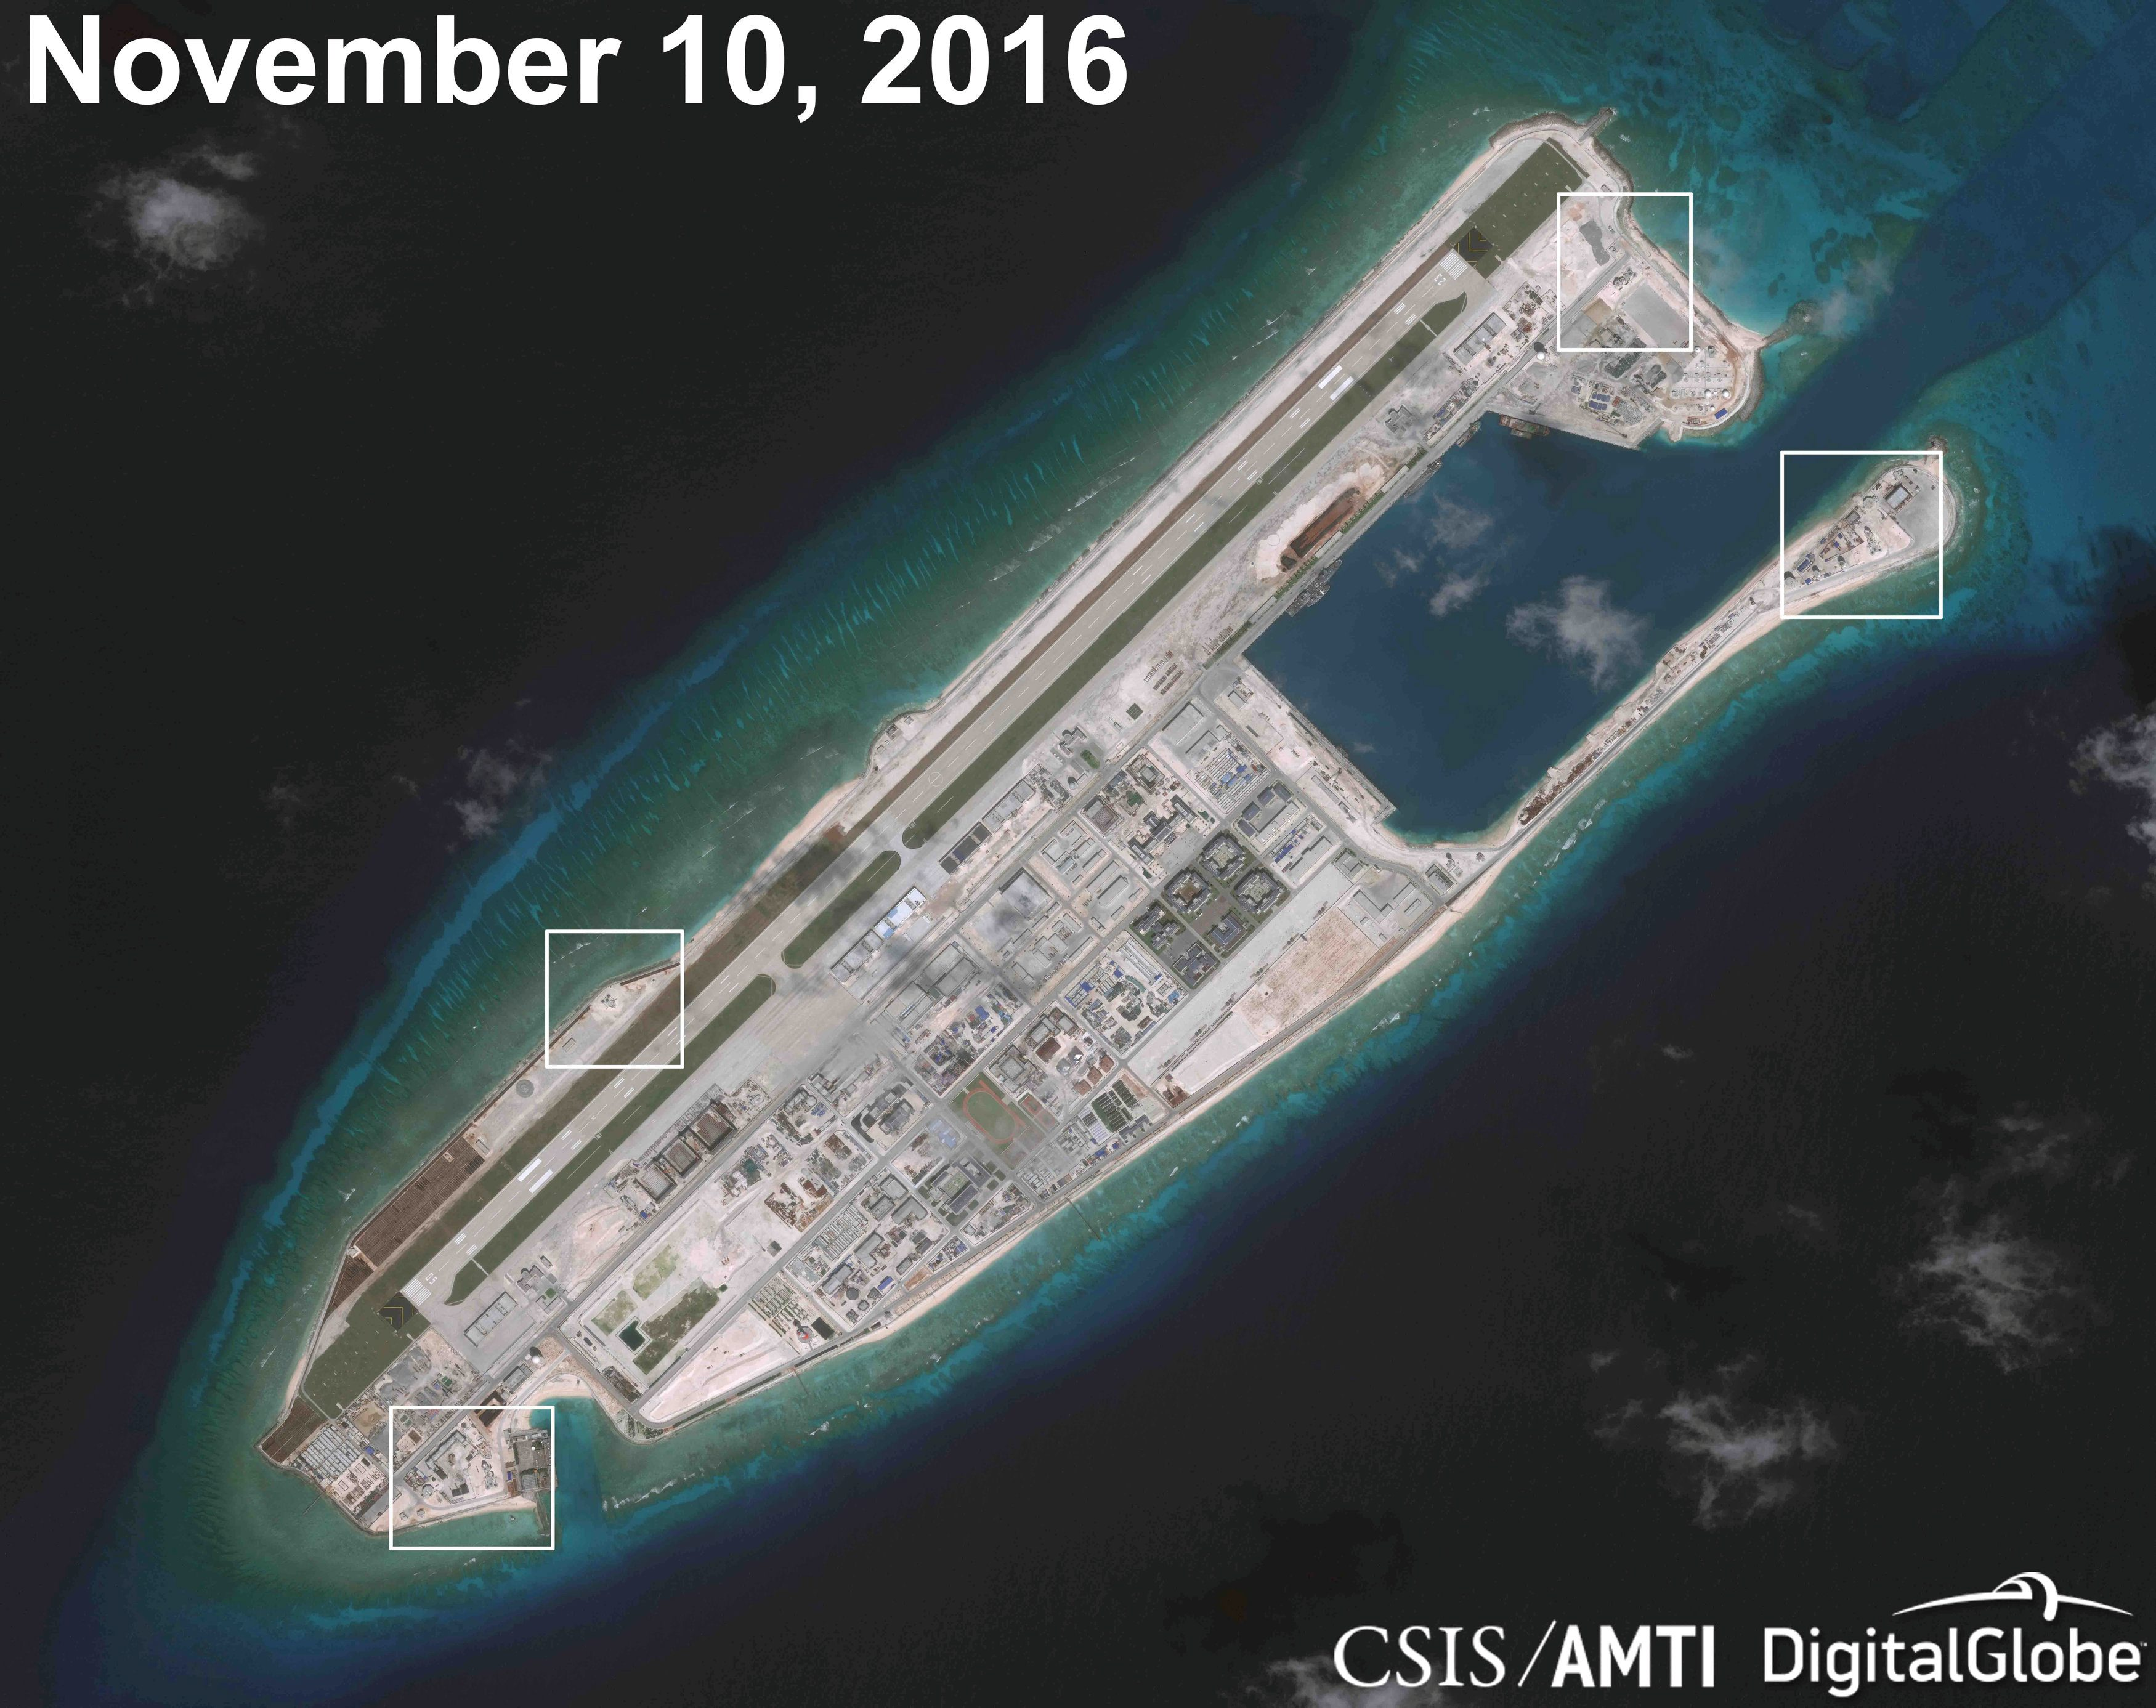 2017-01-24T035329Z_987593205_RC1DF43A3300_RTRMADP_3_SOUTHCHINASEA-CHINA-ARMS